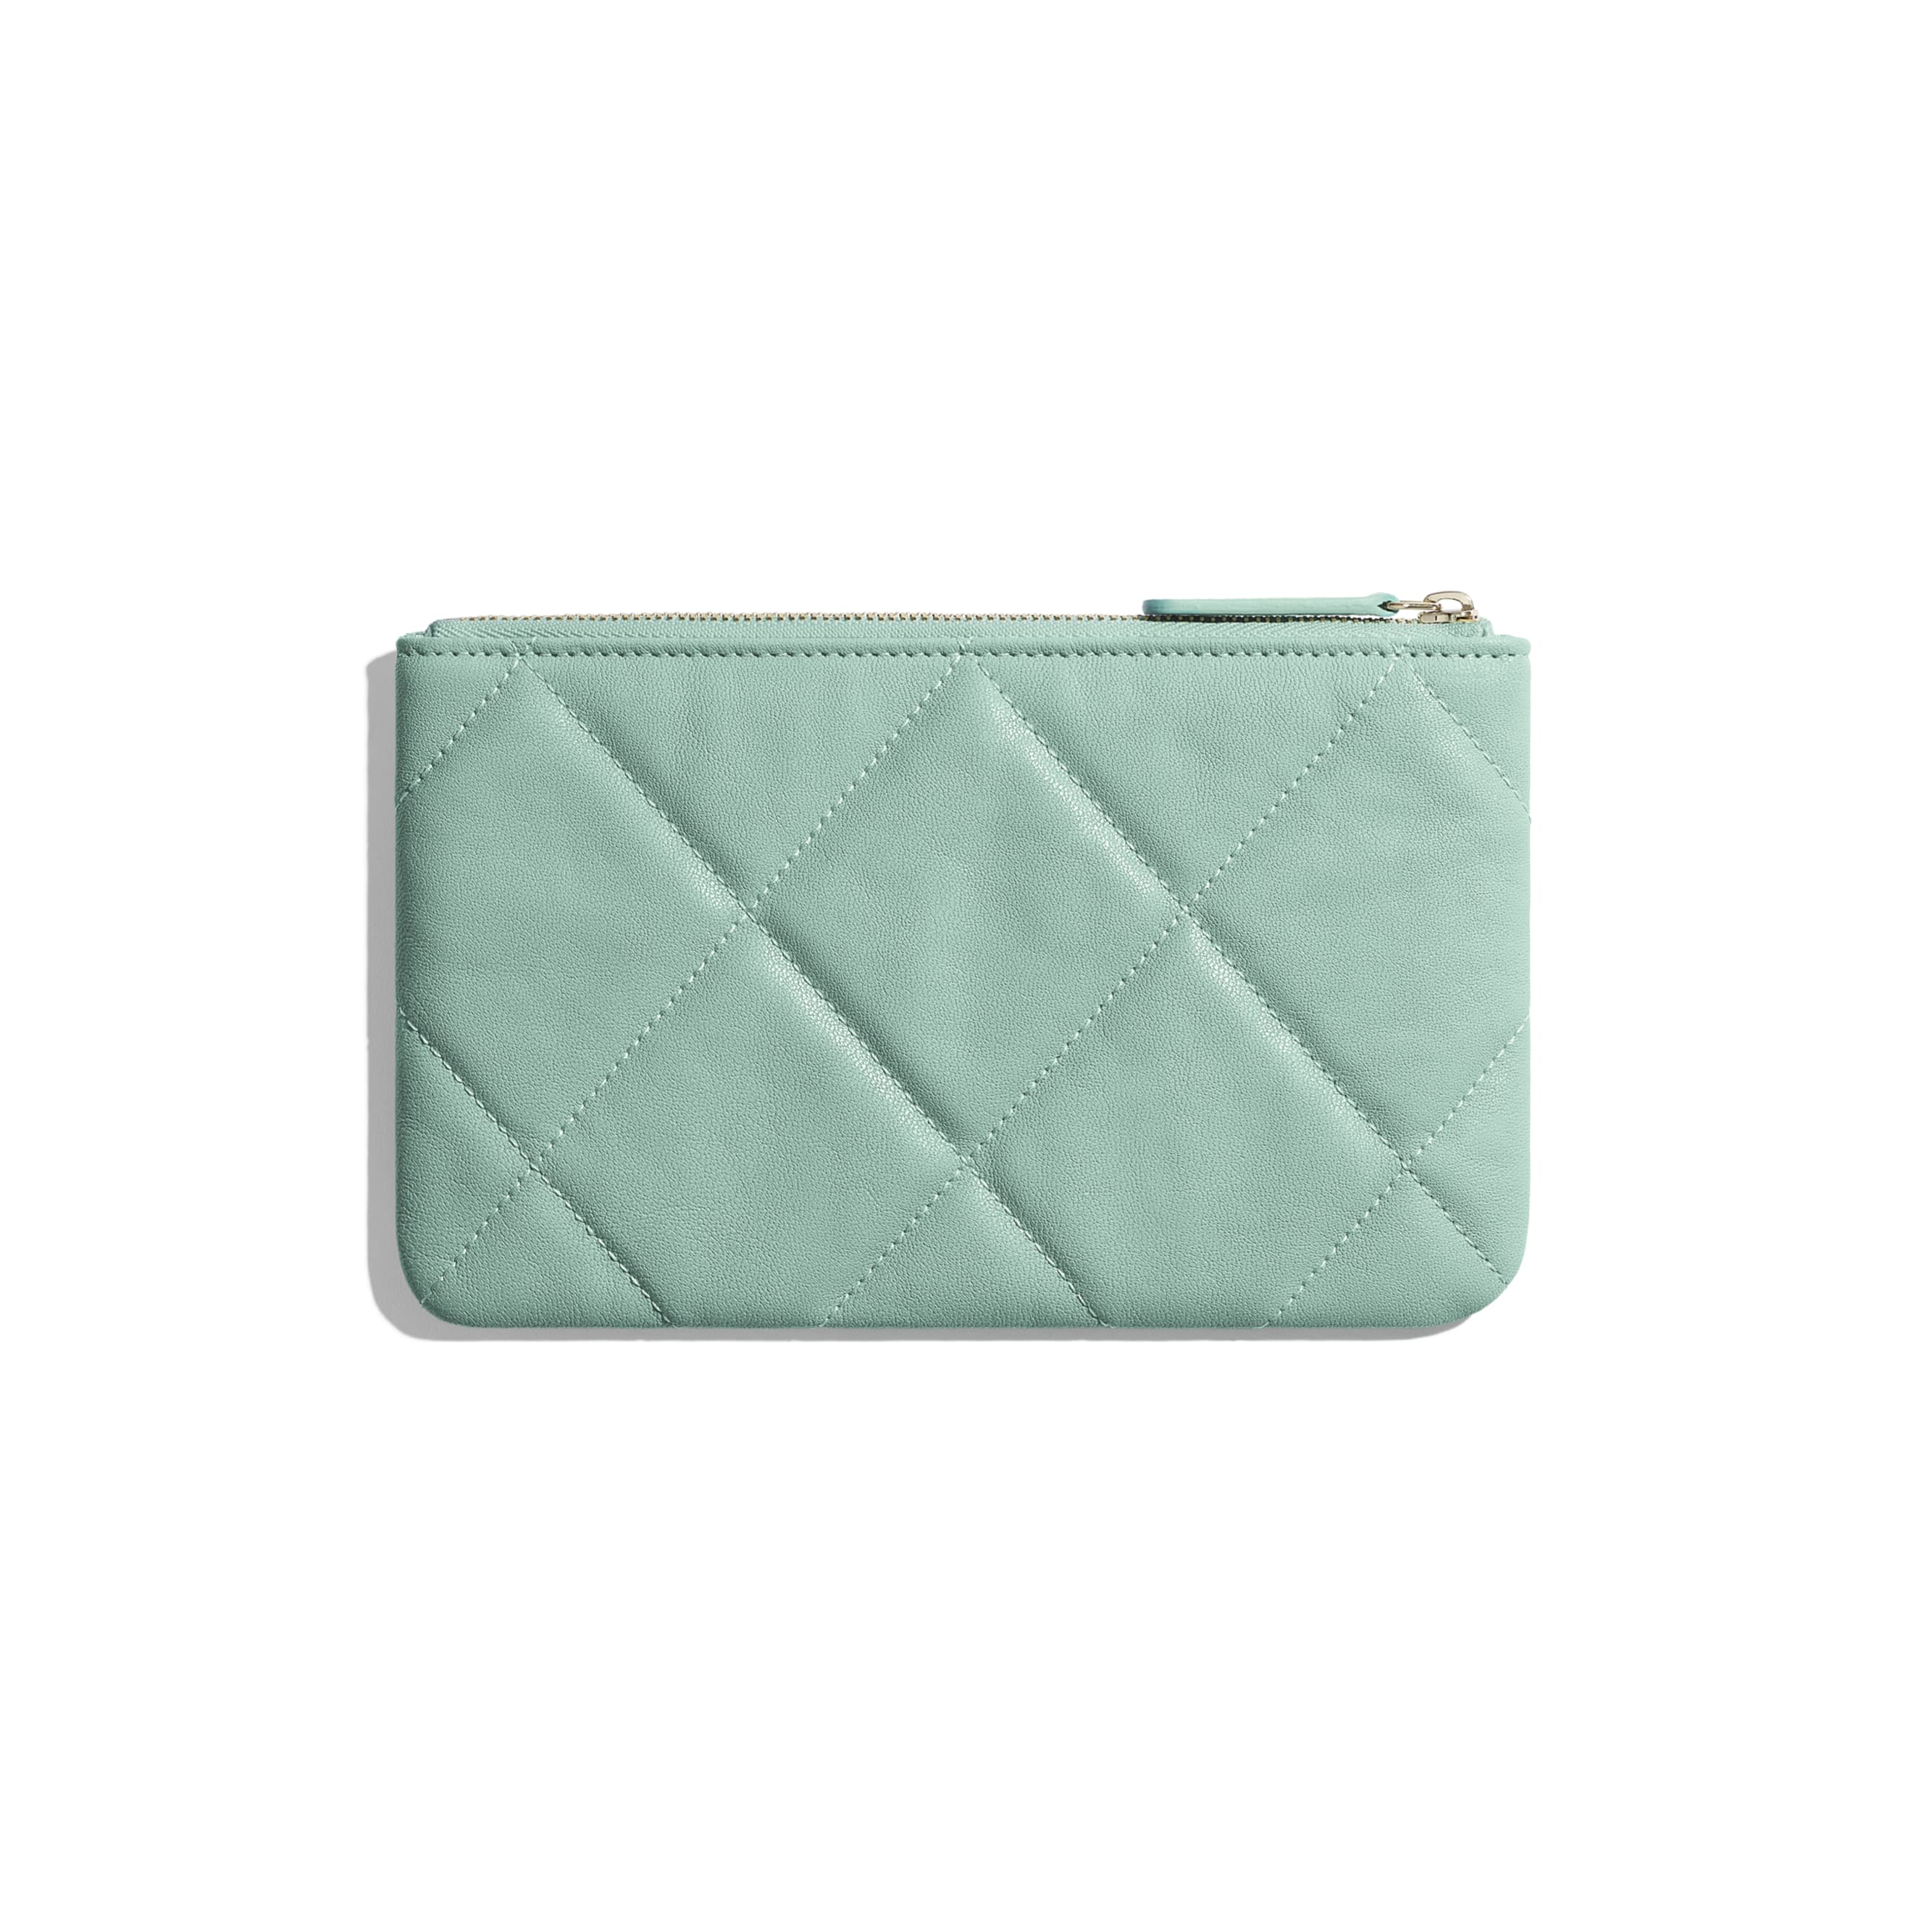 CHANEL 19 Small Pouch - Blue - Lambskin, Gold-Tone, Silver-Tone & Ruthenium-Finish Metal - Alternative view - see standard sized version